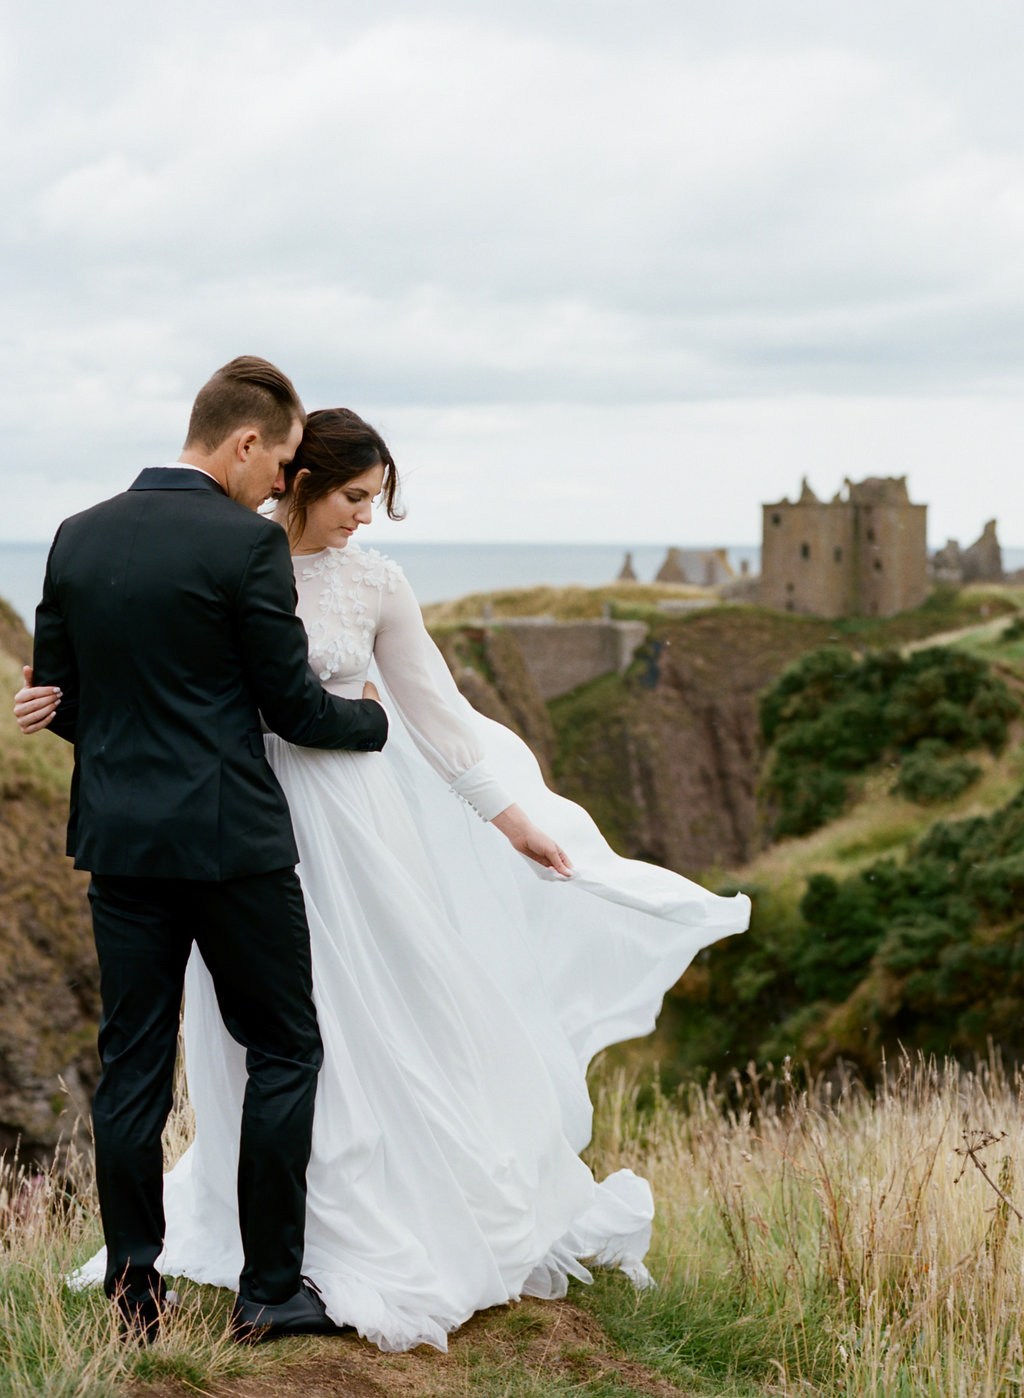 Scotland-Prewedding-highlands-castle-Engagment-Photos-Katie-Grant (114 of 139).jpg